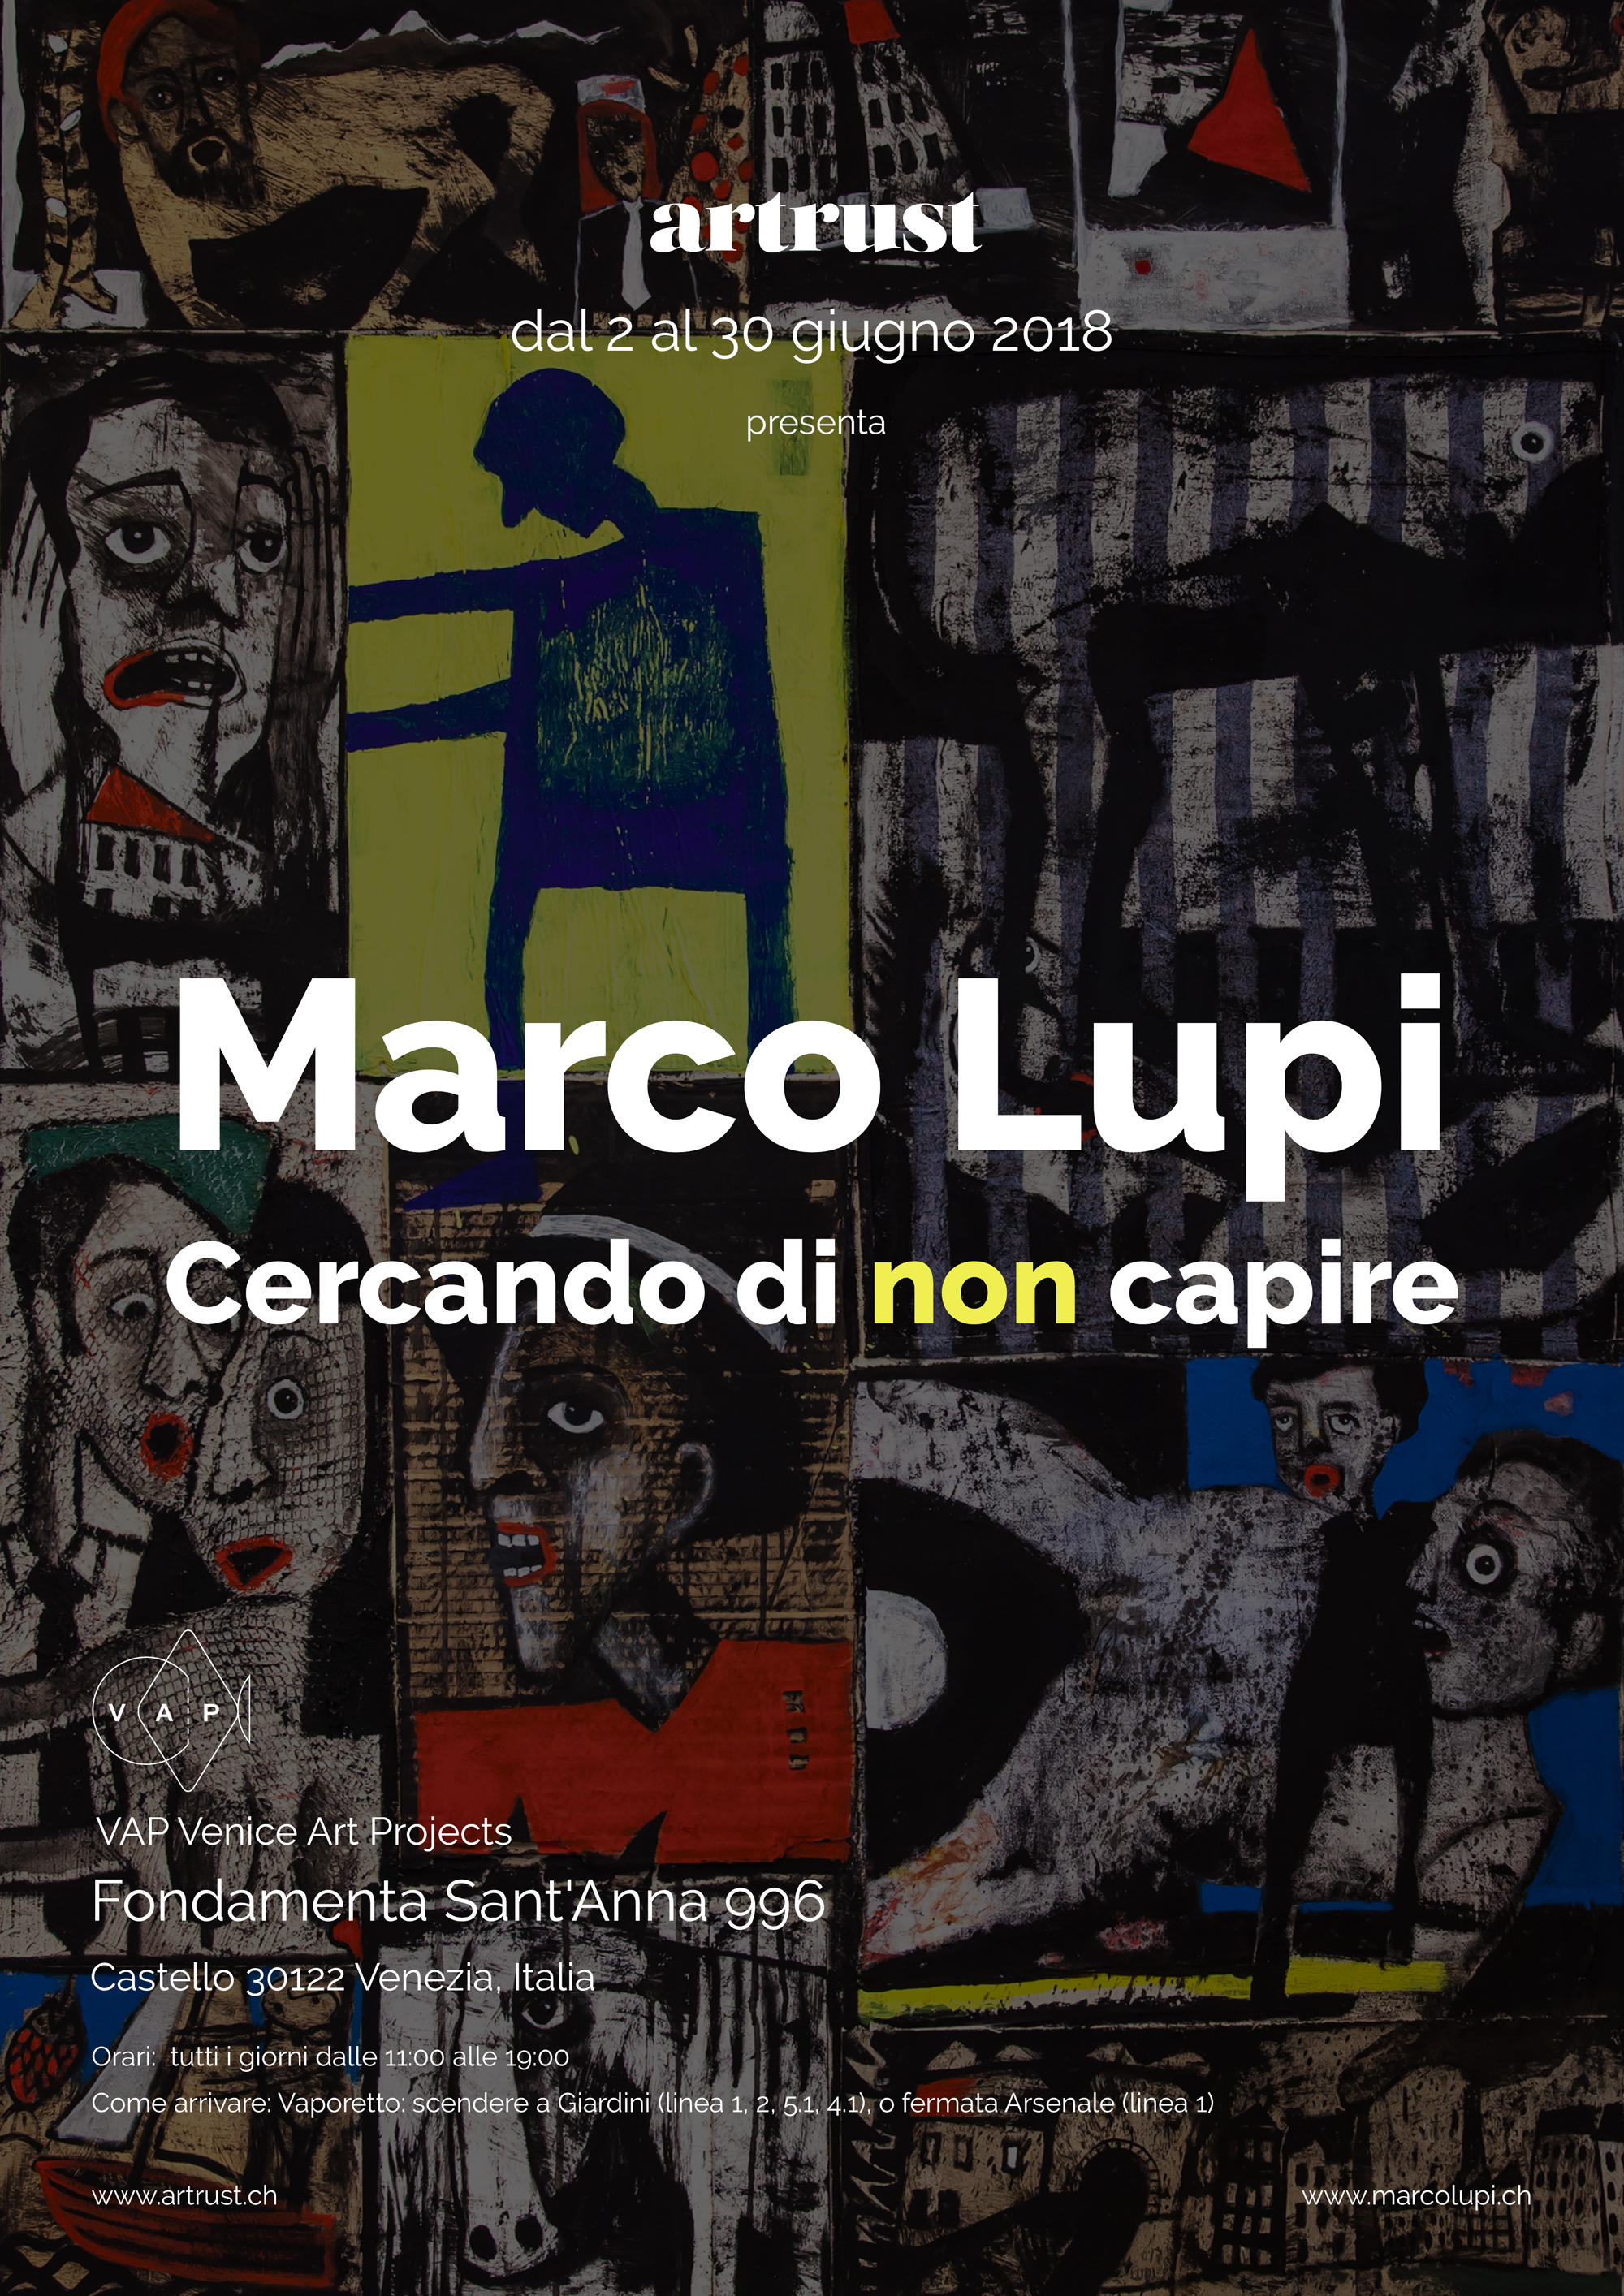 Marco Lupi